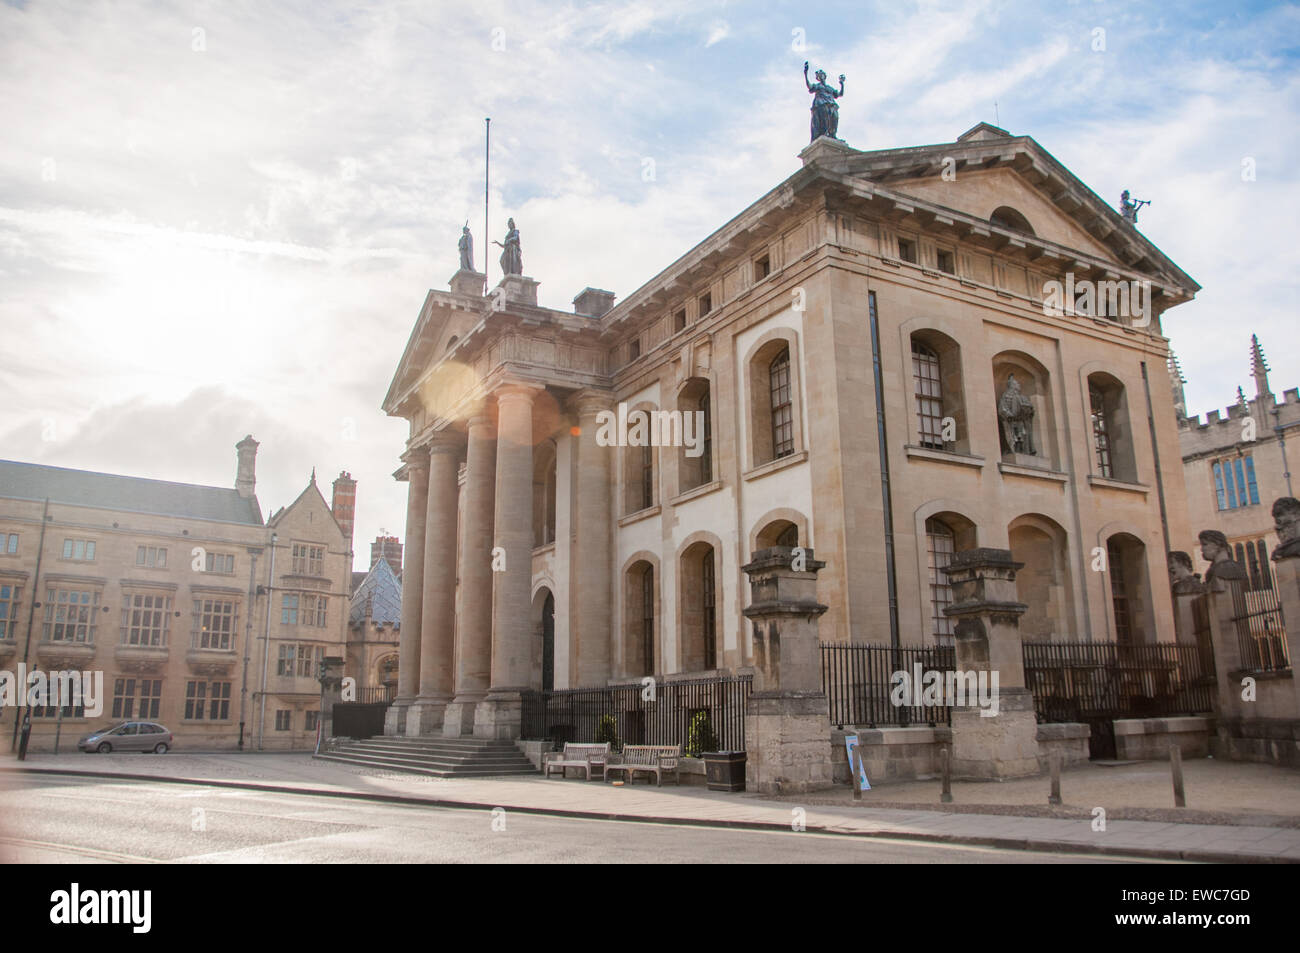 View of the Bodleian Library (Clarendon Building), Oxford, United Kingdom - Stock Image